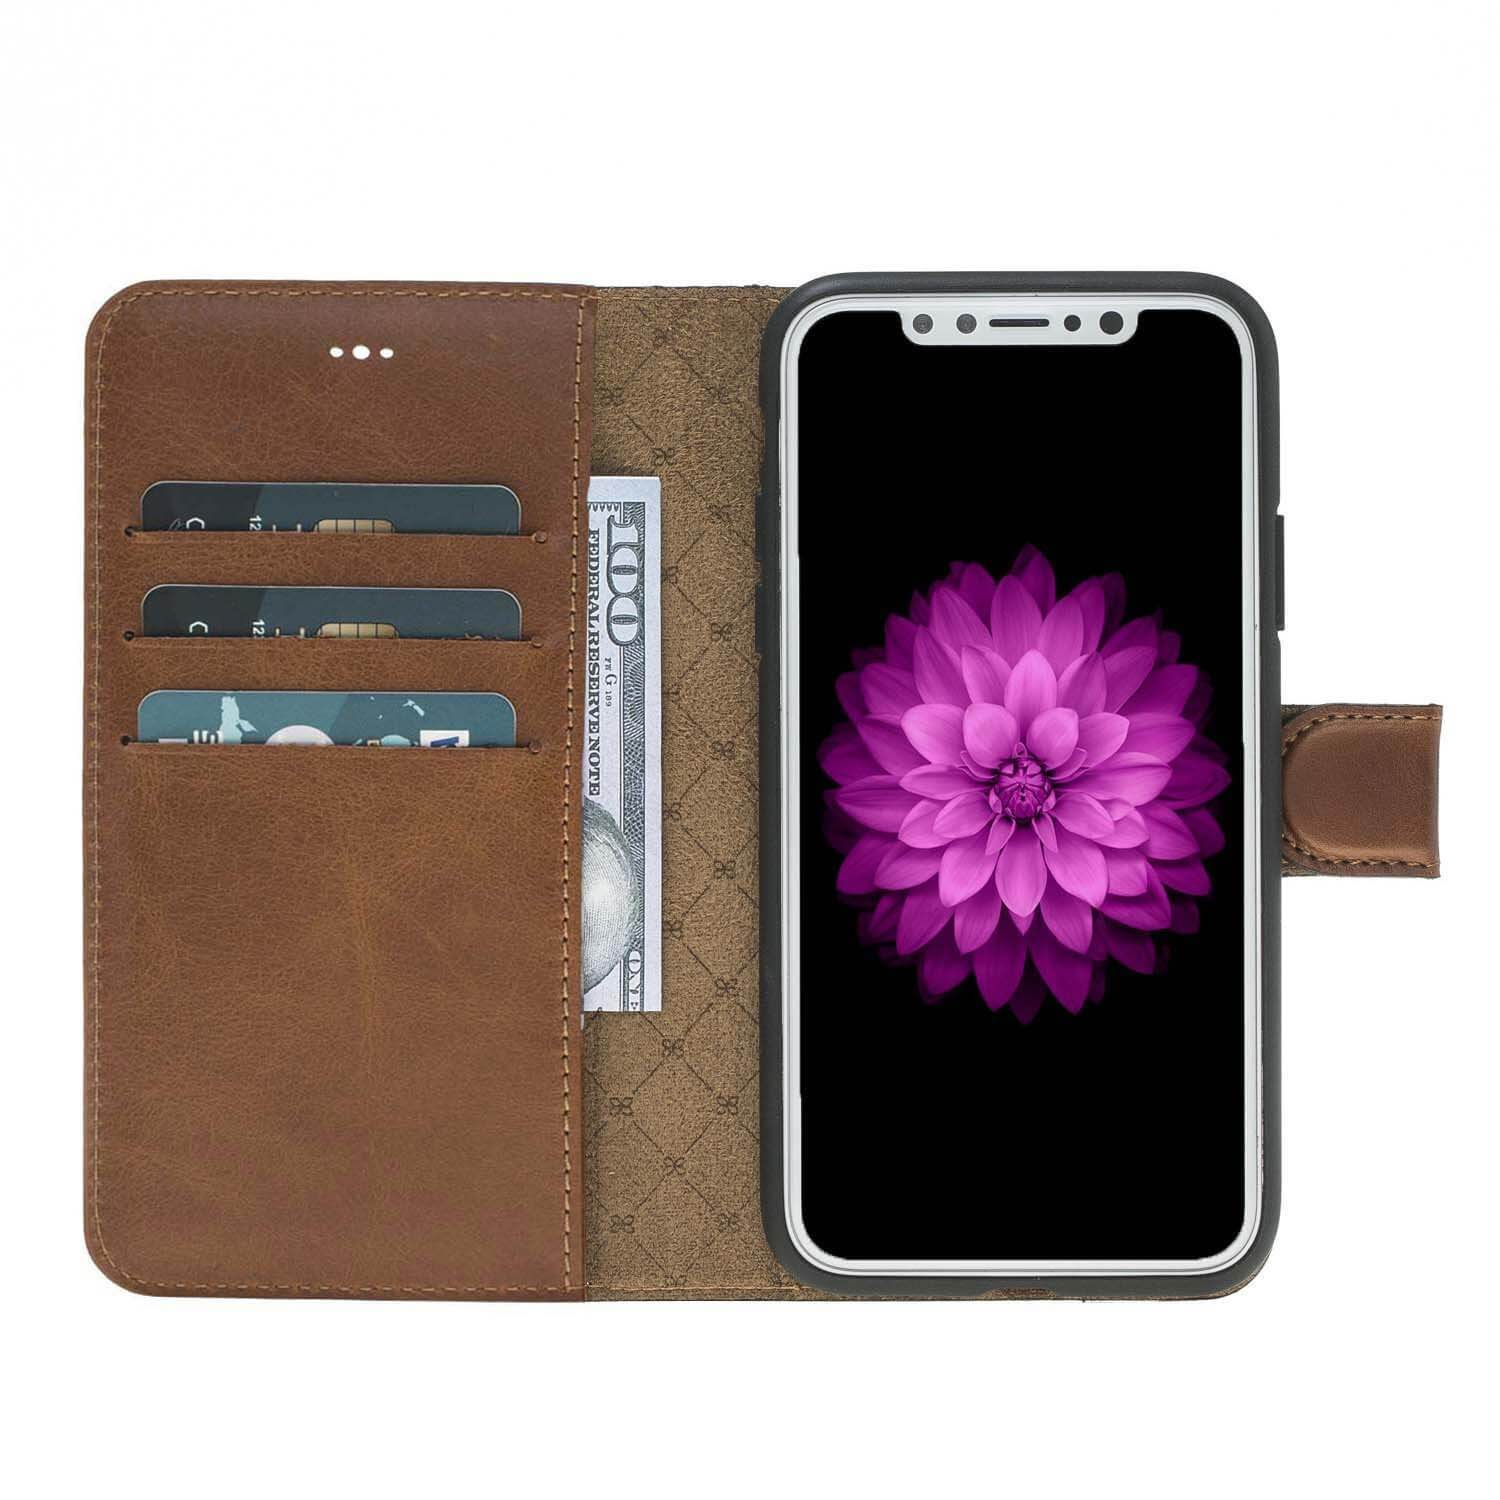 Phone Case Magnetic Detachable Leather Wallet Case for Apple iPhone X/XS - Rustic Burnished Tan Bouletta Case